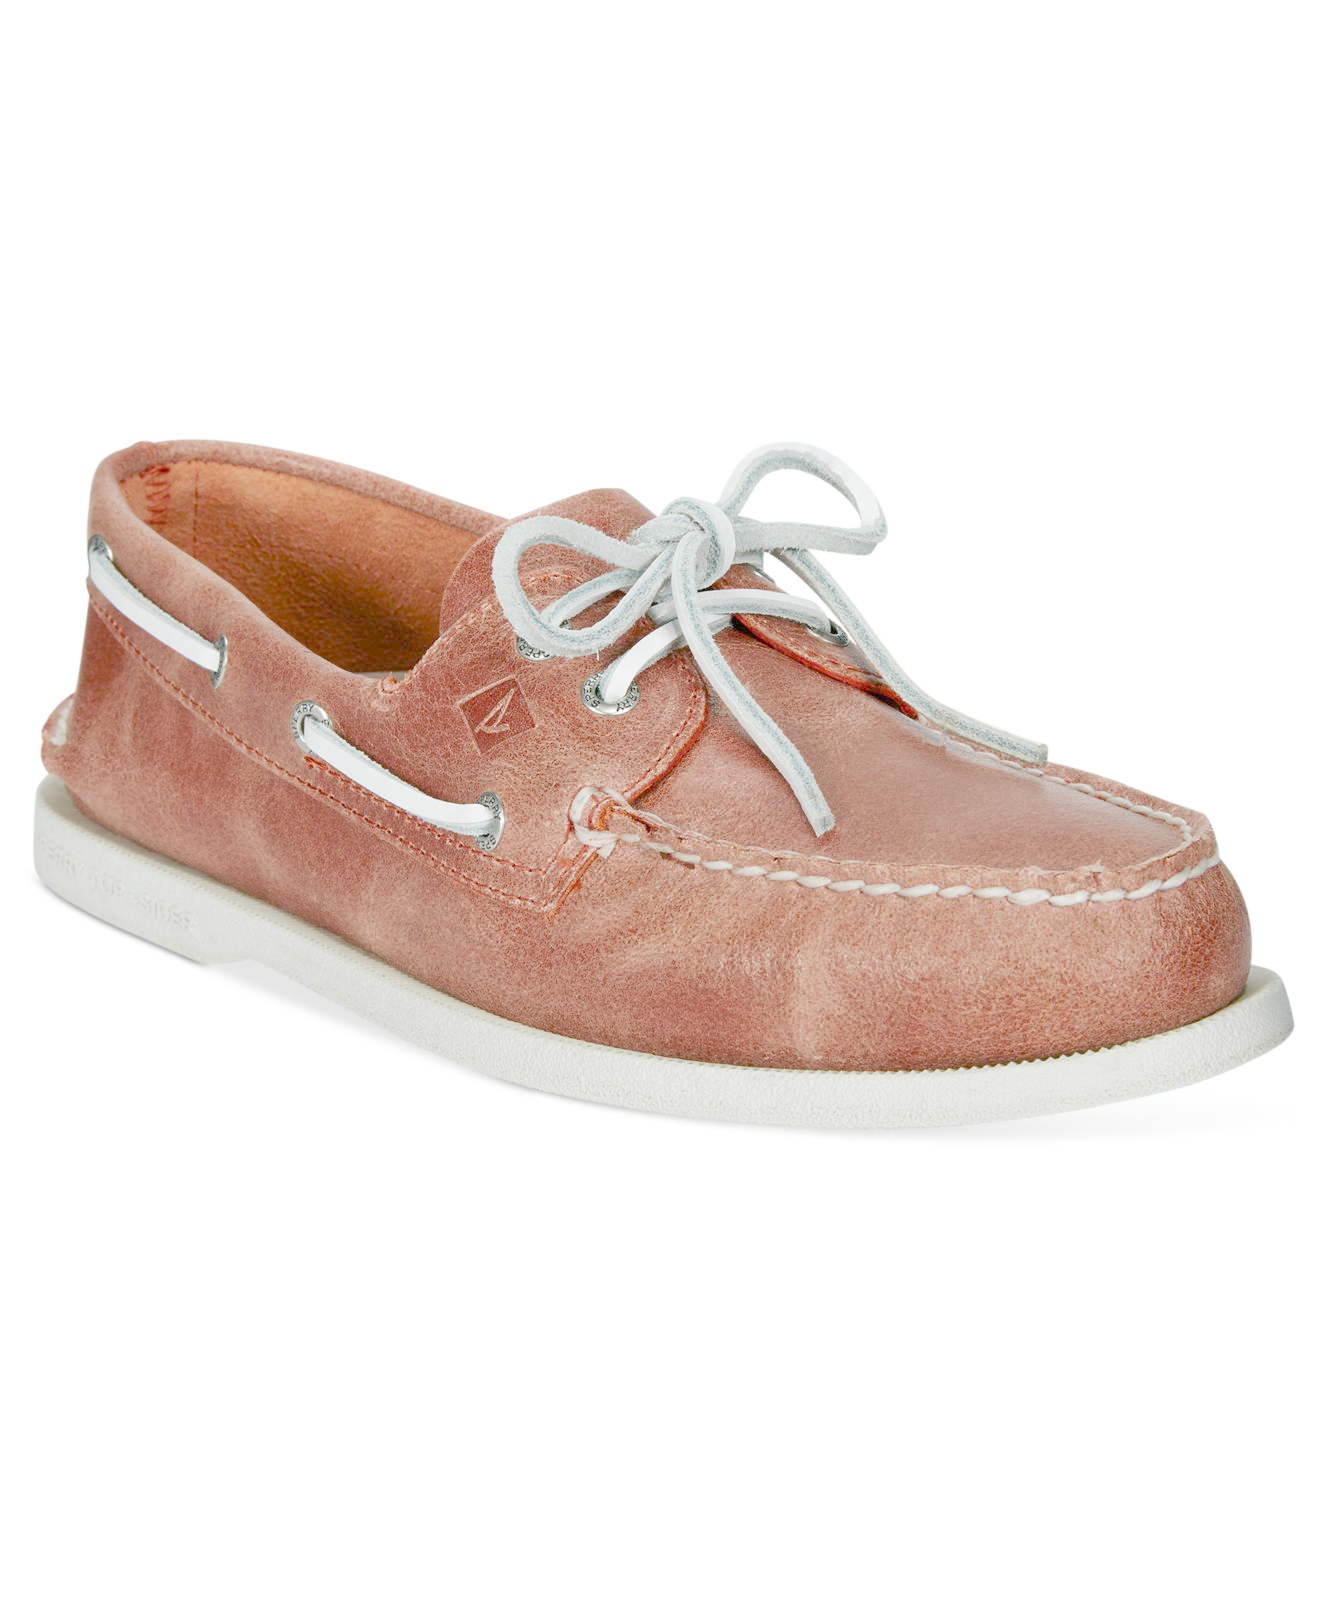 Macys Sperry Mens Boat Shoes